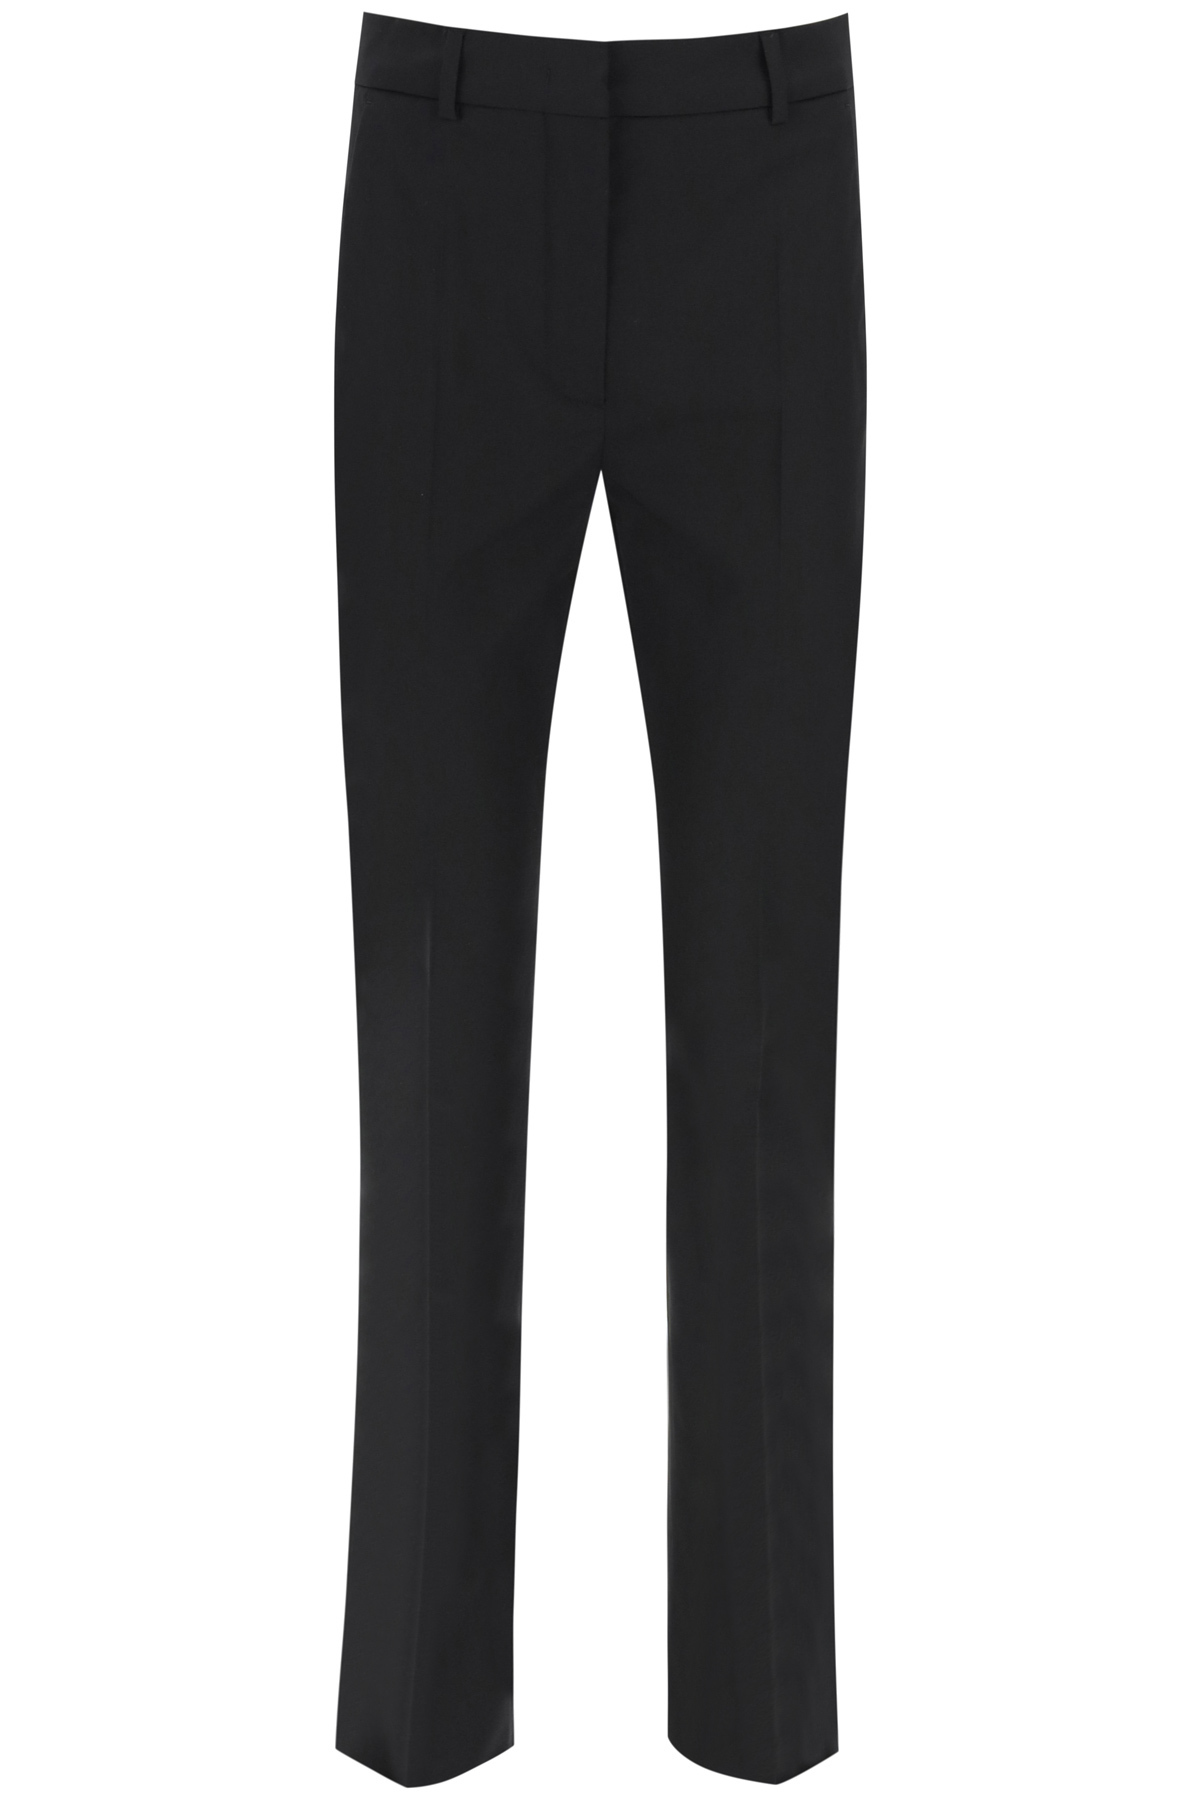 COTTON TAILORED TROUSERS